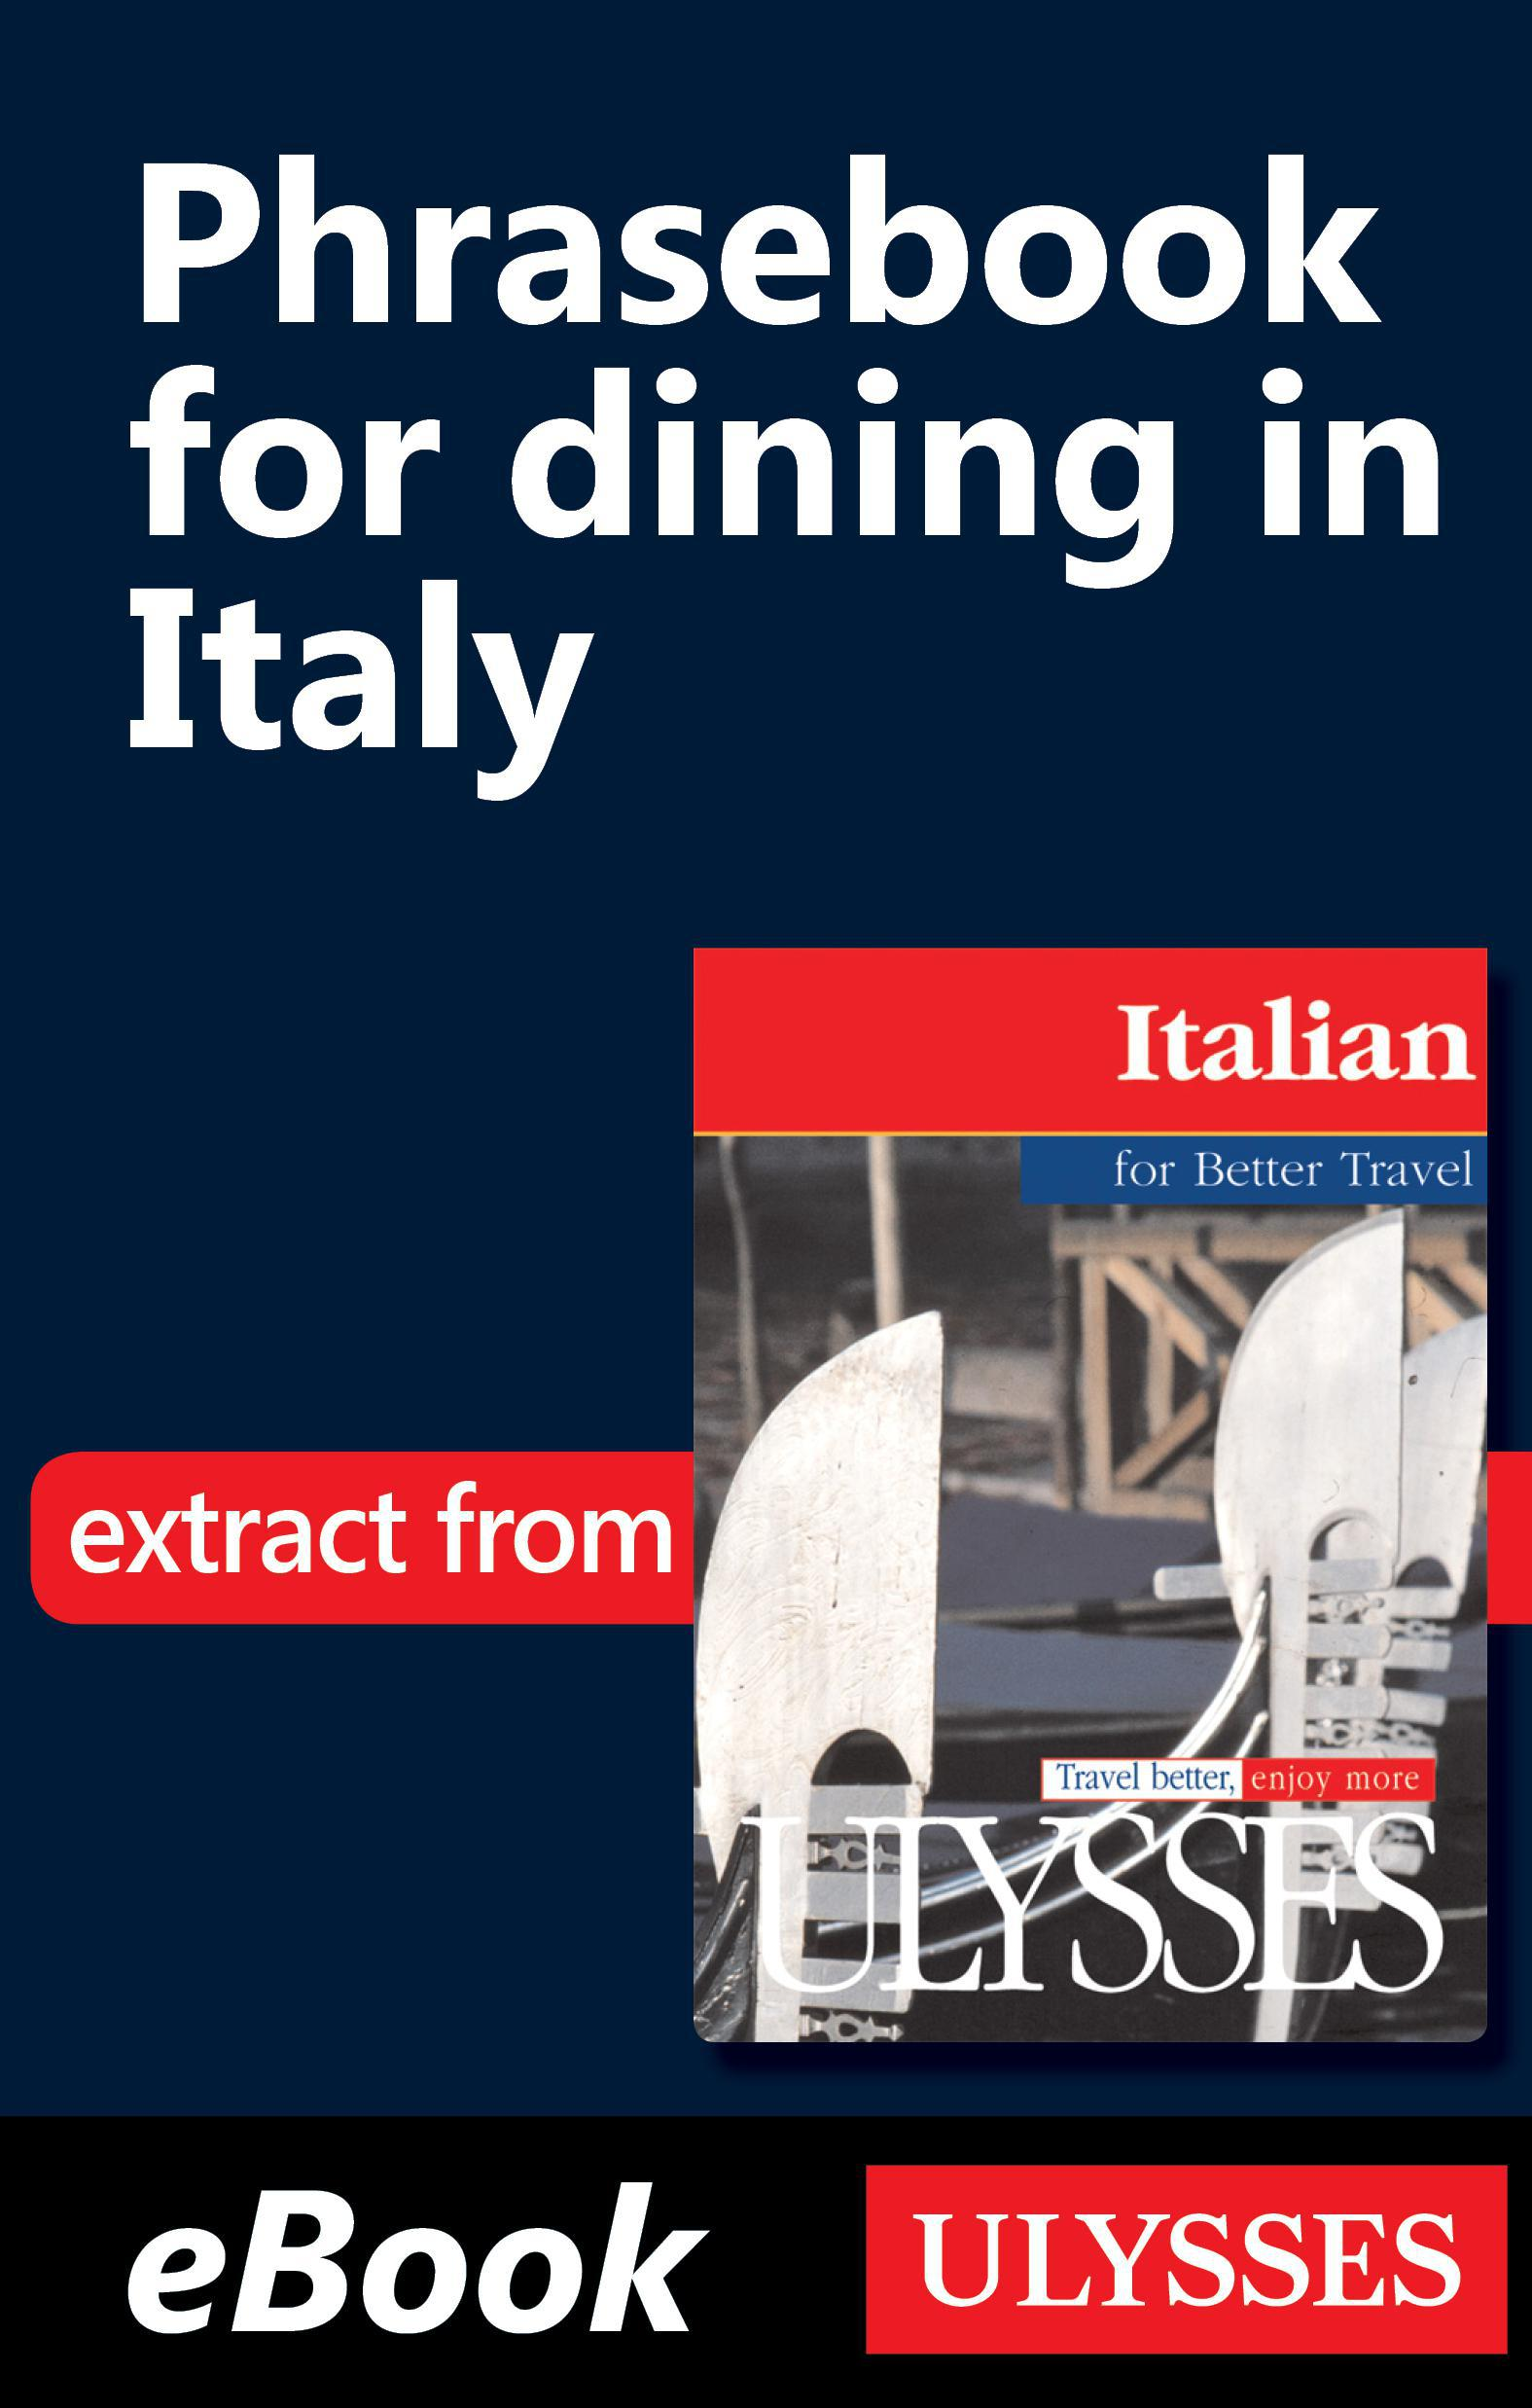 Phrasebook for dining in Italy